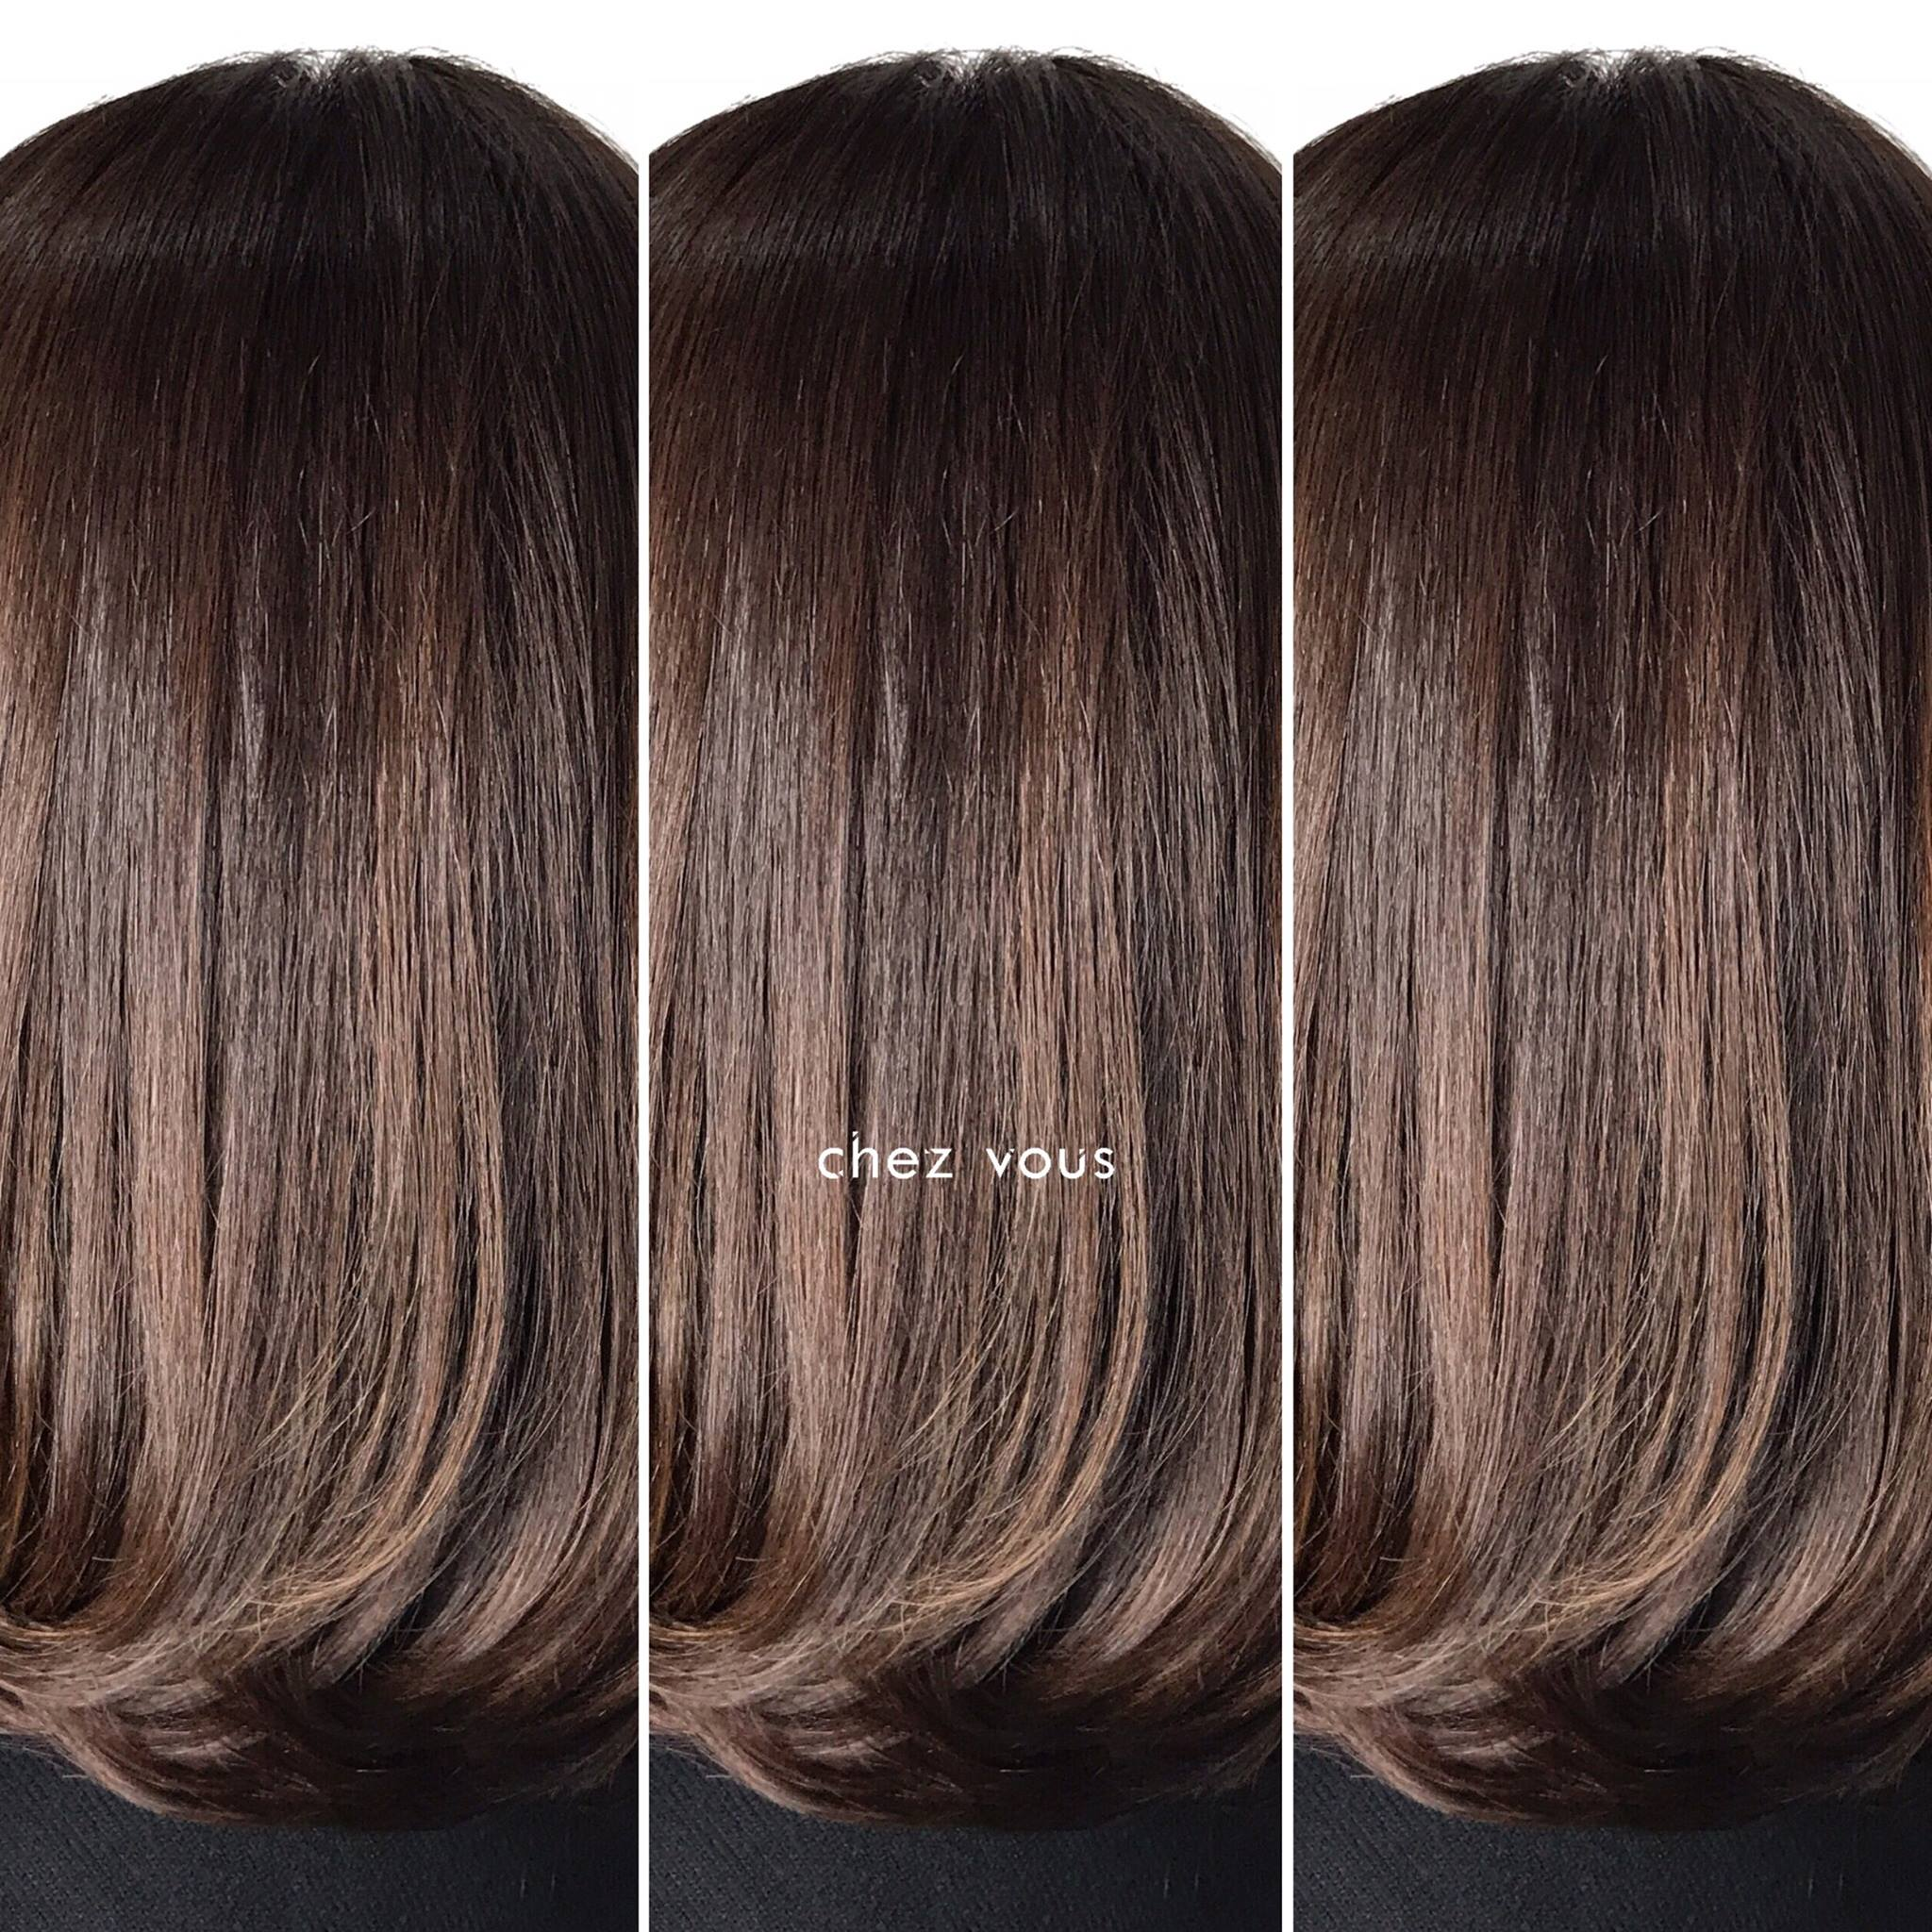 Natural Sunkissed Brown Hair Colour by Chez Vous